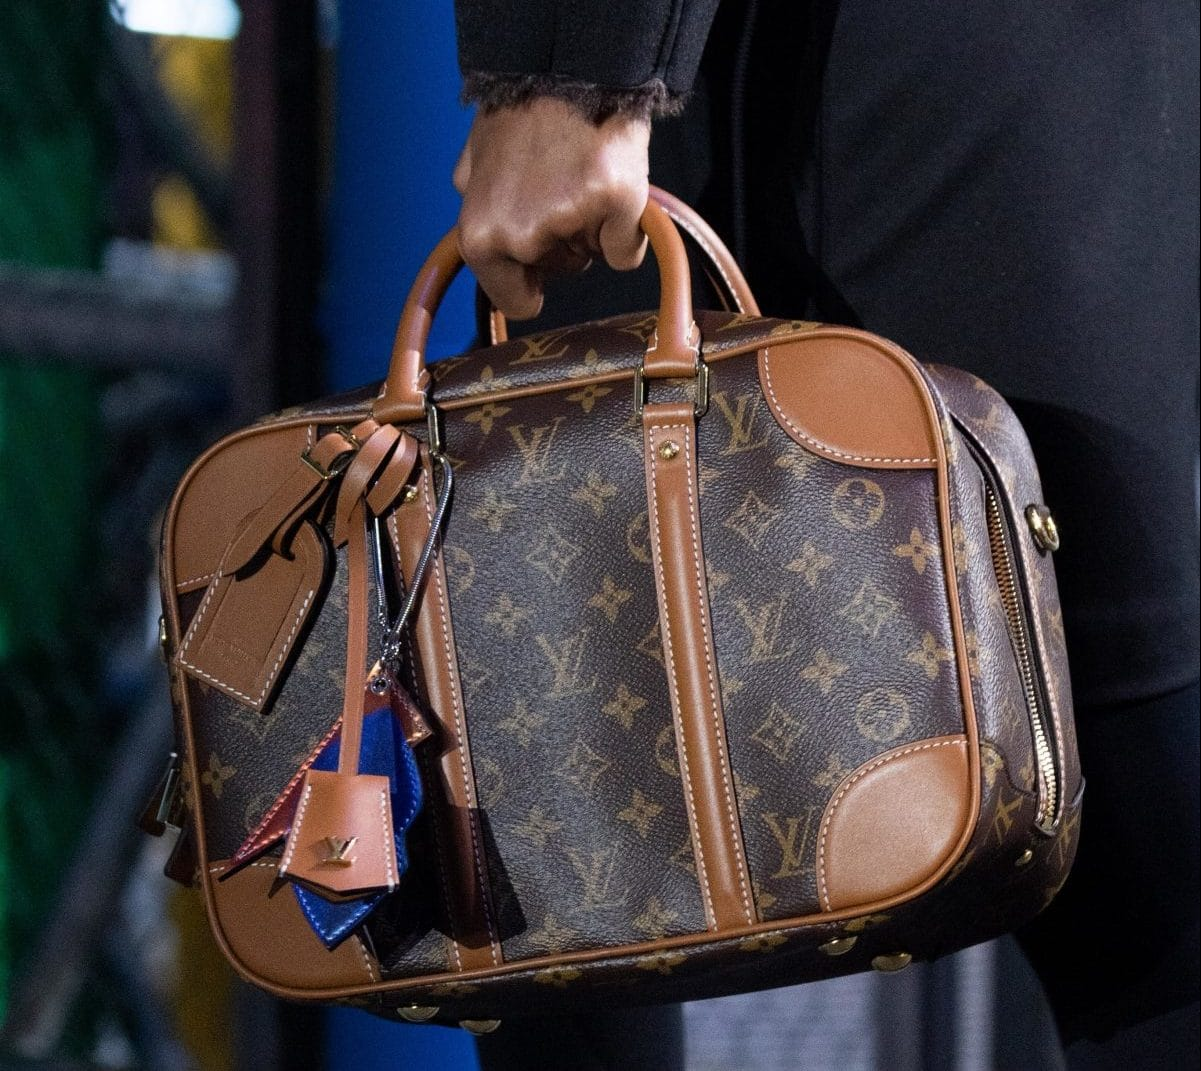 Louis-Vuitton-Monogram-Canvas-Luggage-Bag-Fall-2019